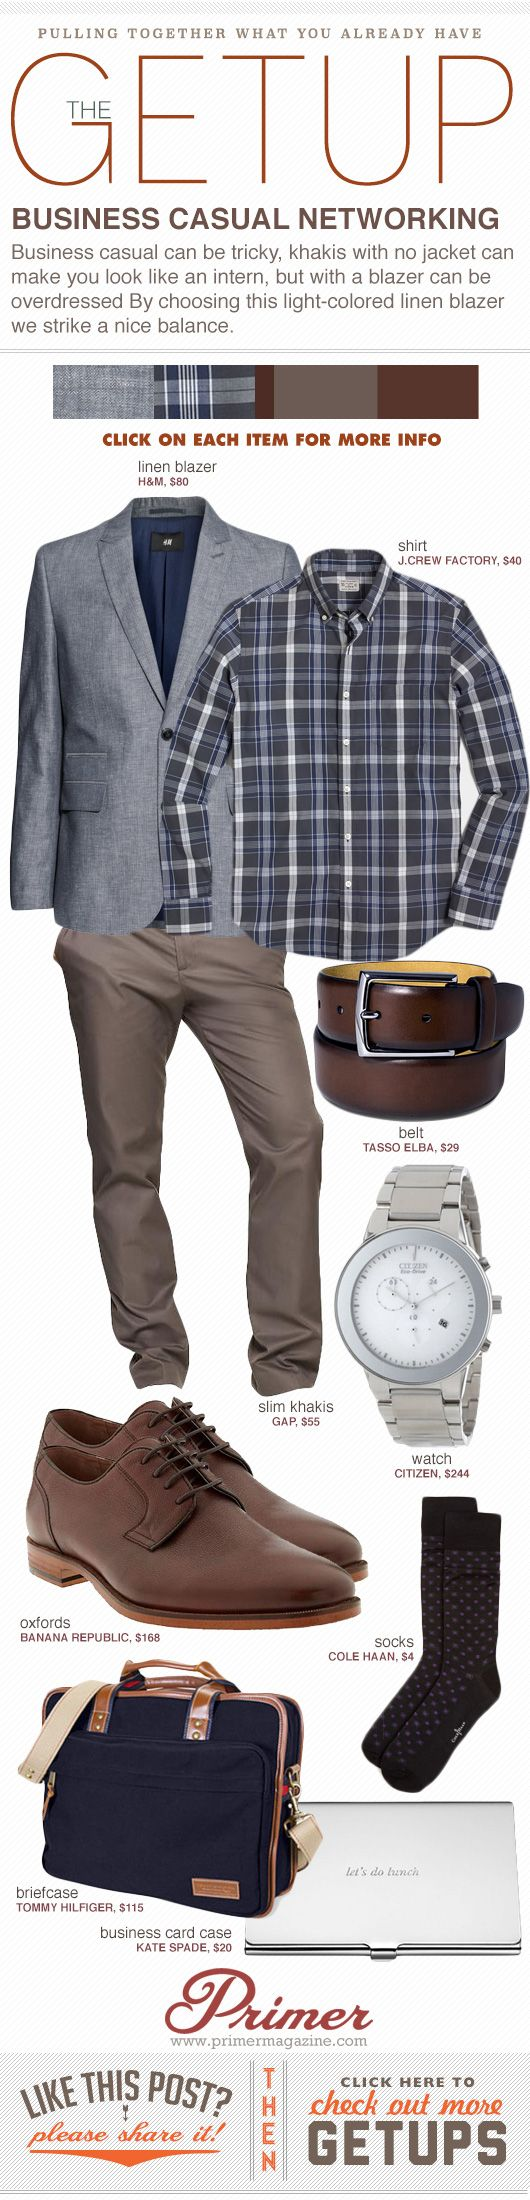 Business casual can be tricky, khakis with no jacket can make you look like an intern, but with a blazer can be overdressed By choosing this light-colored linen blazer we strike a nice balance.